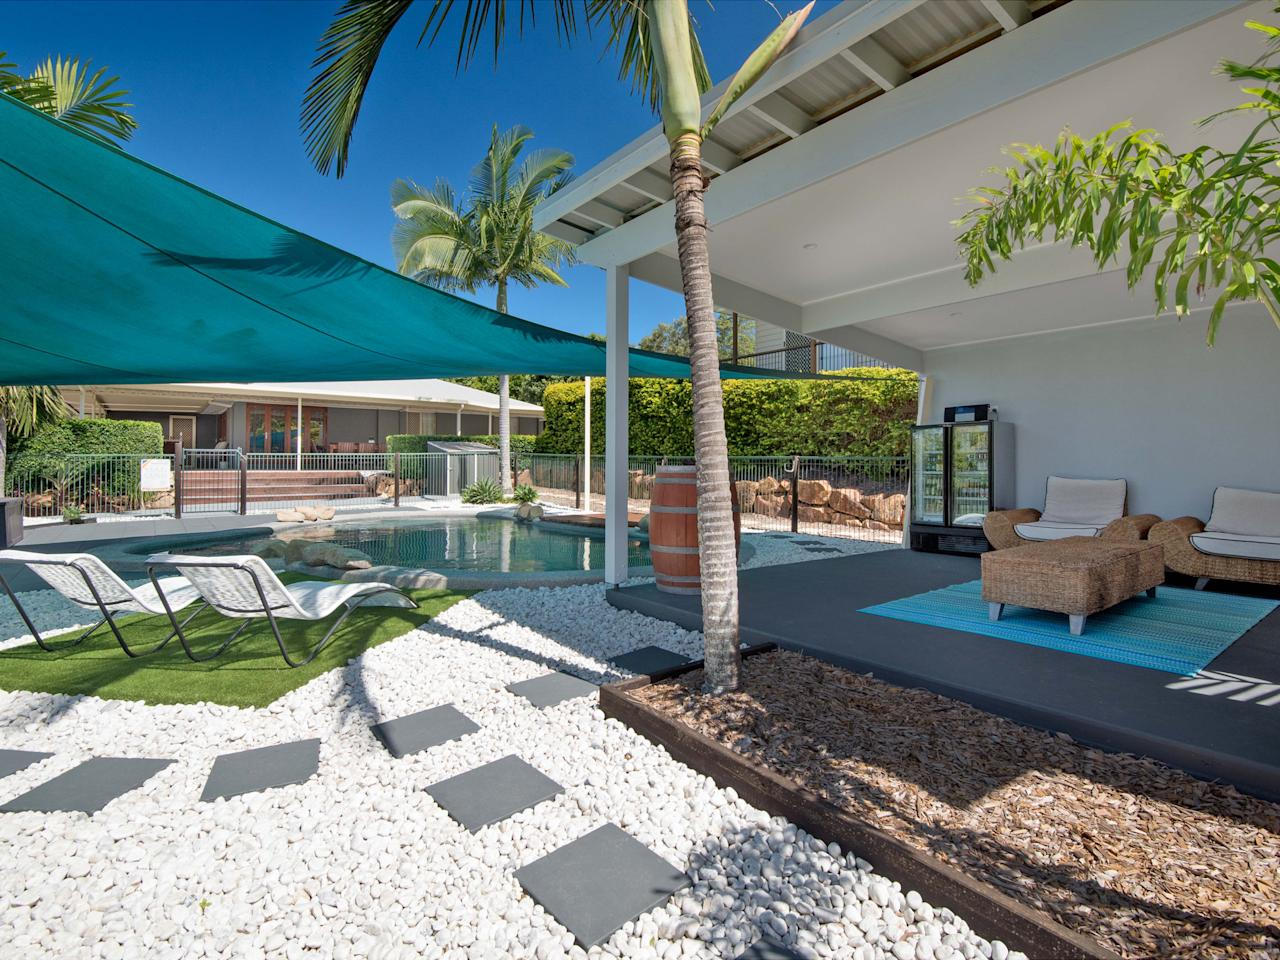 <p>Set in 1.5 acres, 9 Parakeet Court in Warner, has a swimming pool and sun terrace that could have been plucked right off the pages of holiday brochure advertising a luxury hotel and spa resort. There's even a self-contained one bedroom granny flat with its own veranda overlooking the pool in the grounds. </p>